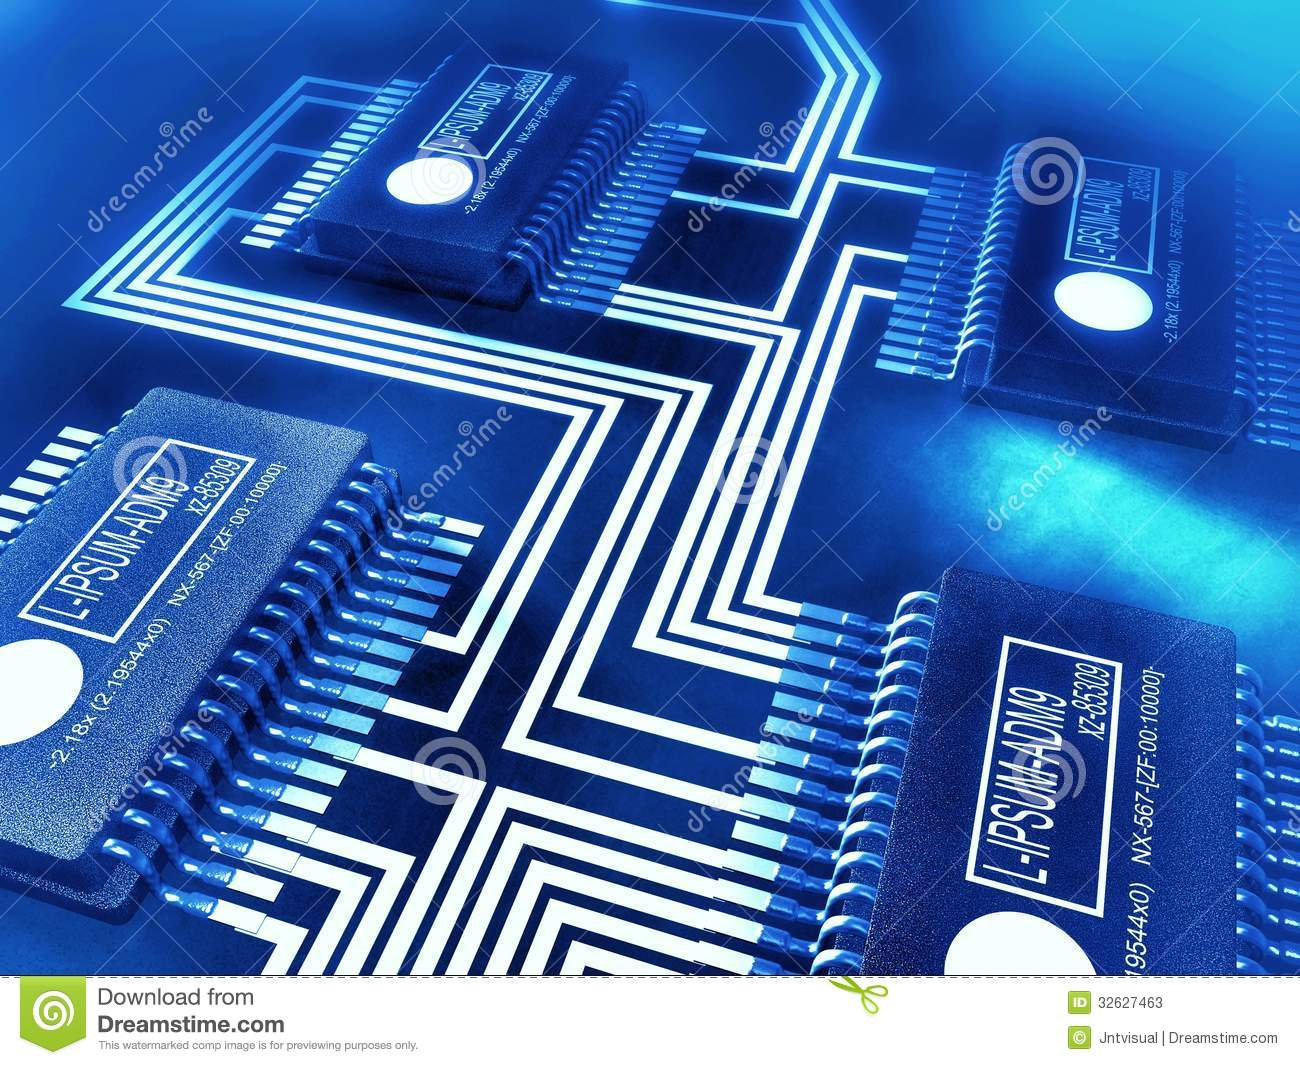 Free Stock Photo Of Board Chip Circuits Printed Circuit Images Image 7251734 With Processors And Computer Chips